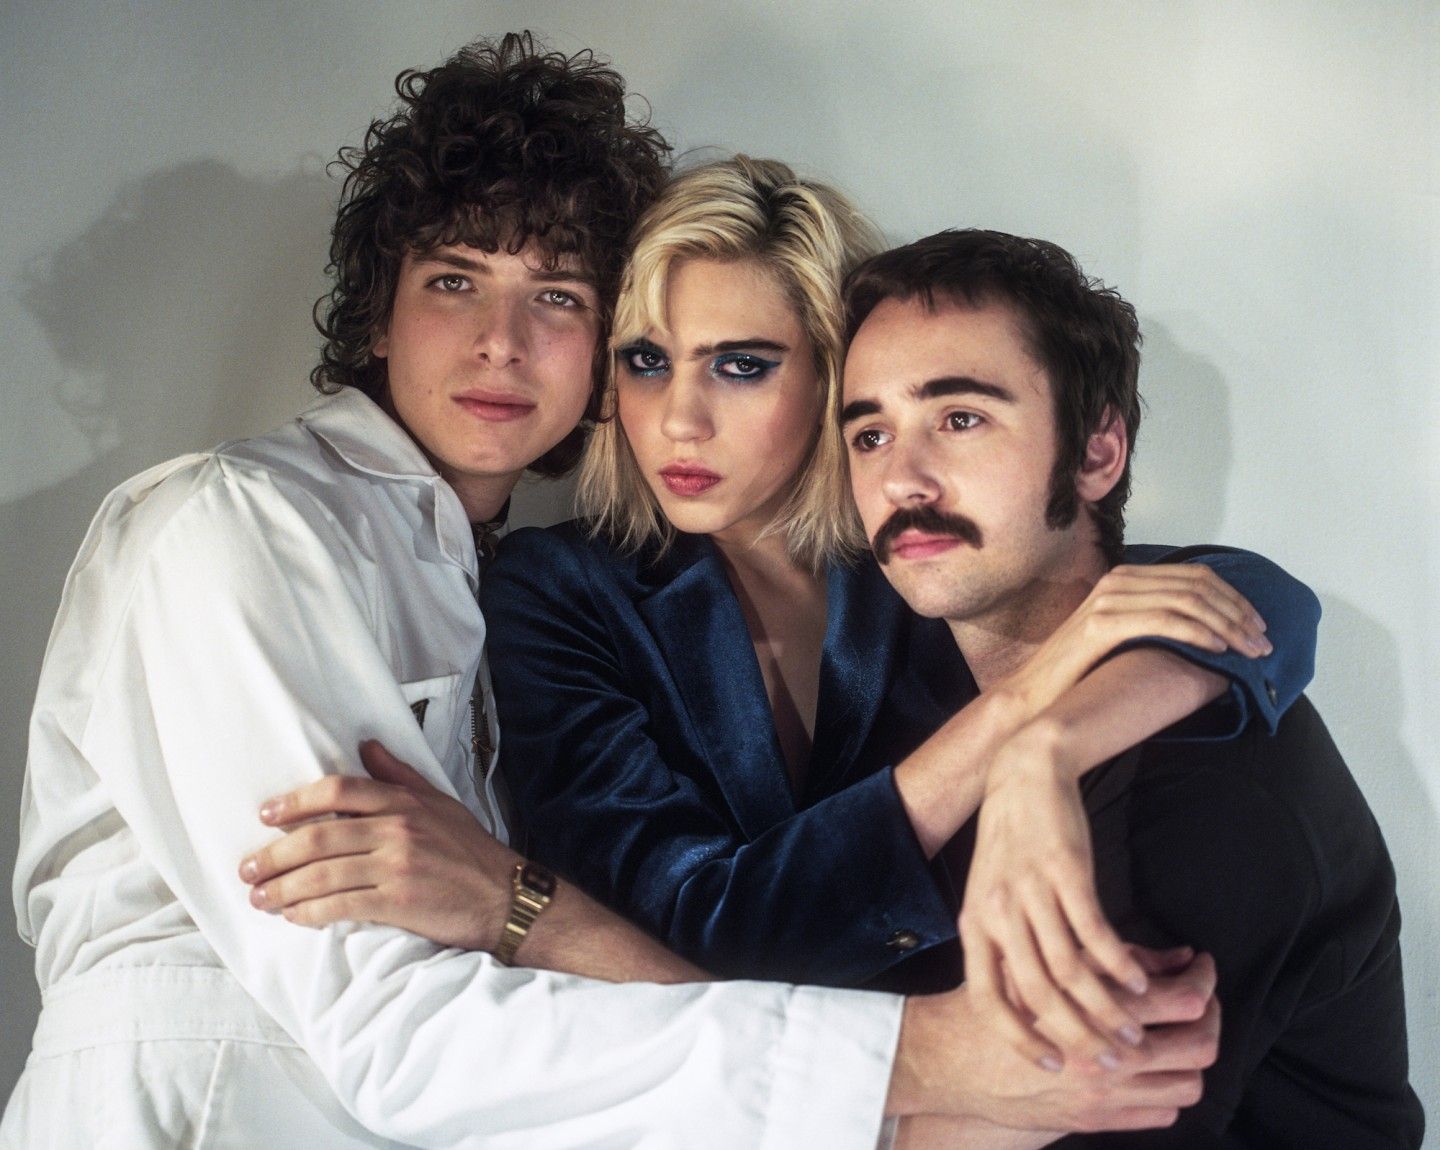 Sunflower Bean on the grown-up uncertainty that inspired <i>Twentytwo in Blue</i>